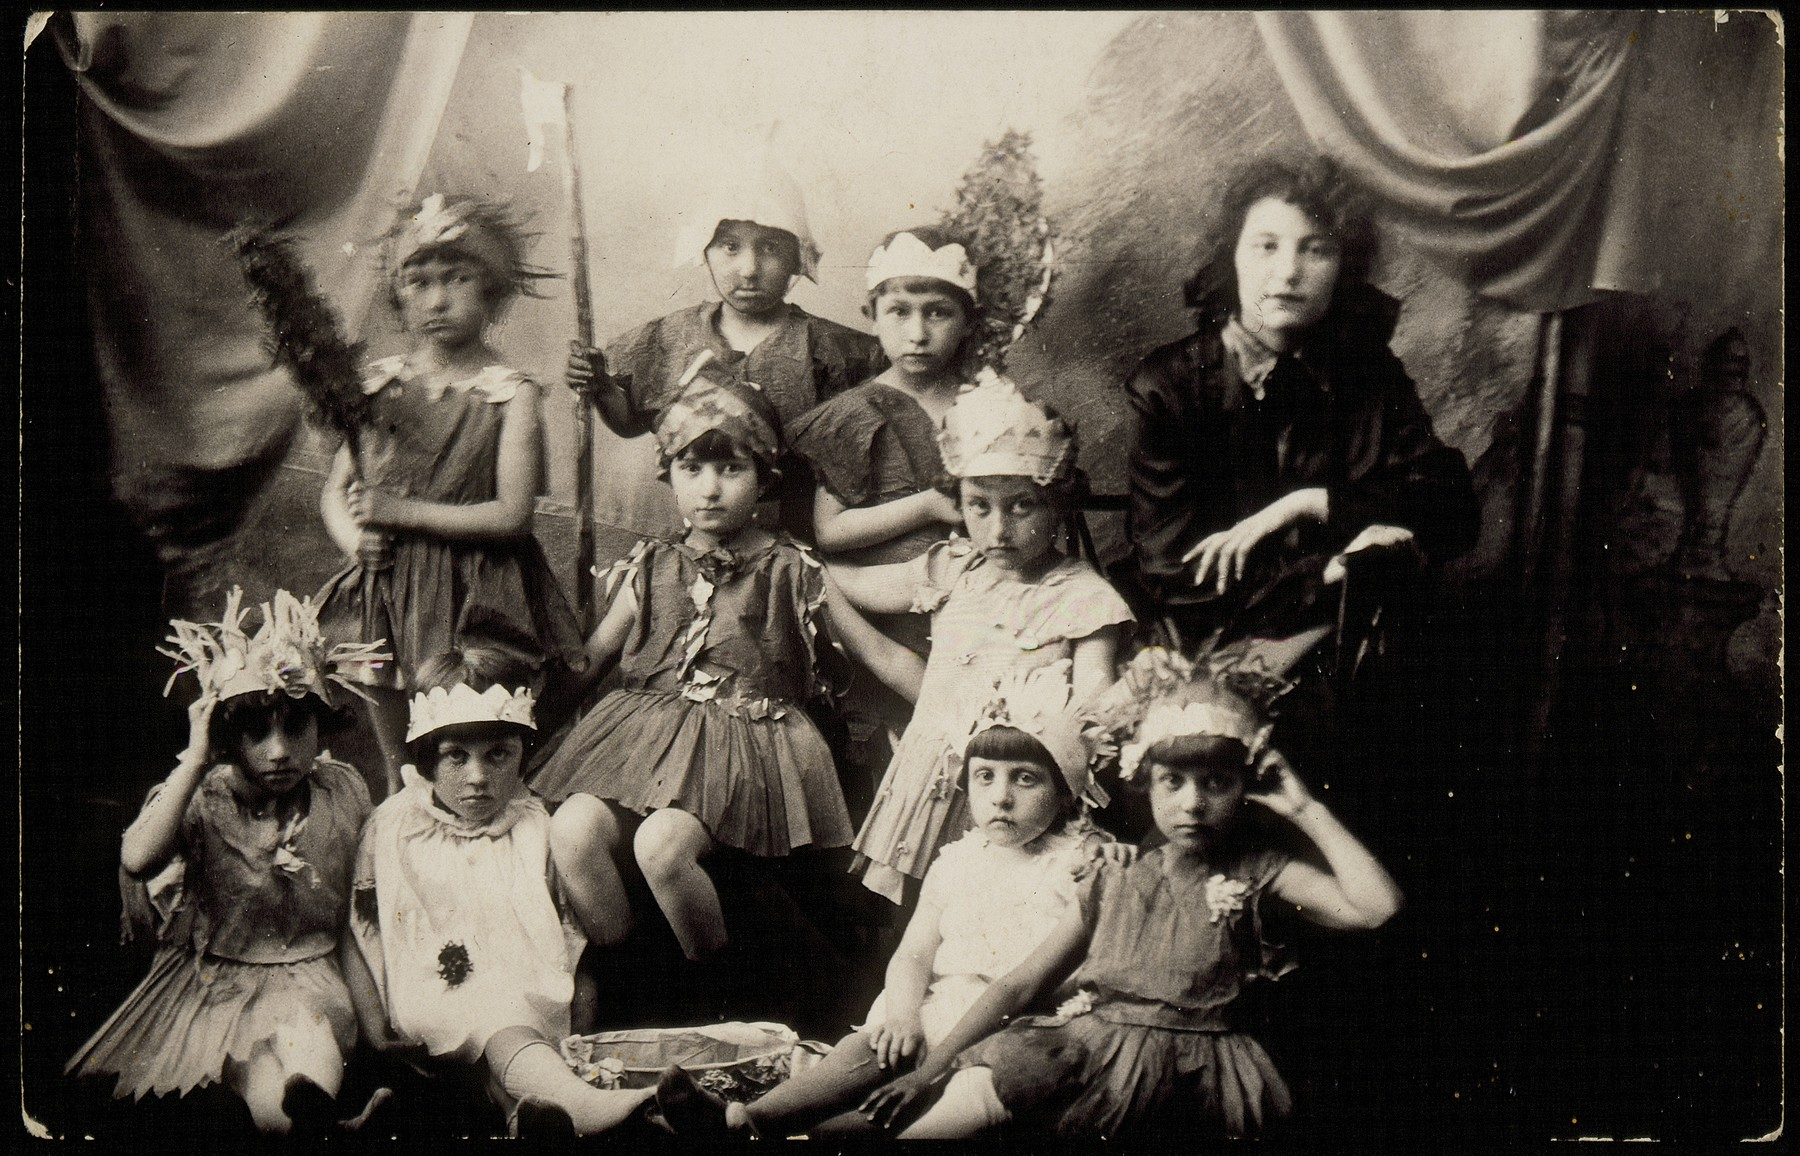 Jewish kindergarten teacher, Rachel Kaleko, poses with her pupils, who are dressed in costumes for a Purim play.  Rachel Kaleko founded the Gani Hebrew kindergarten in Eisiskes.  She immigrated to Palestine in the early 1930s.